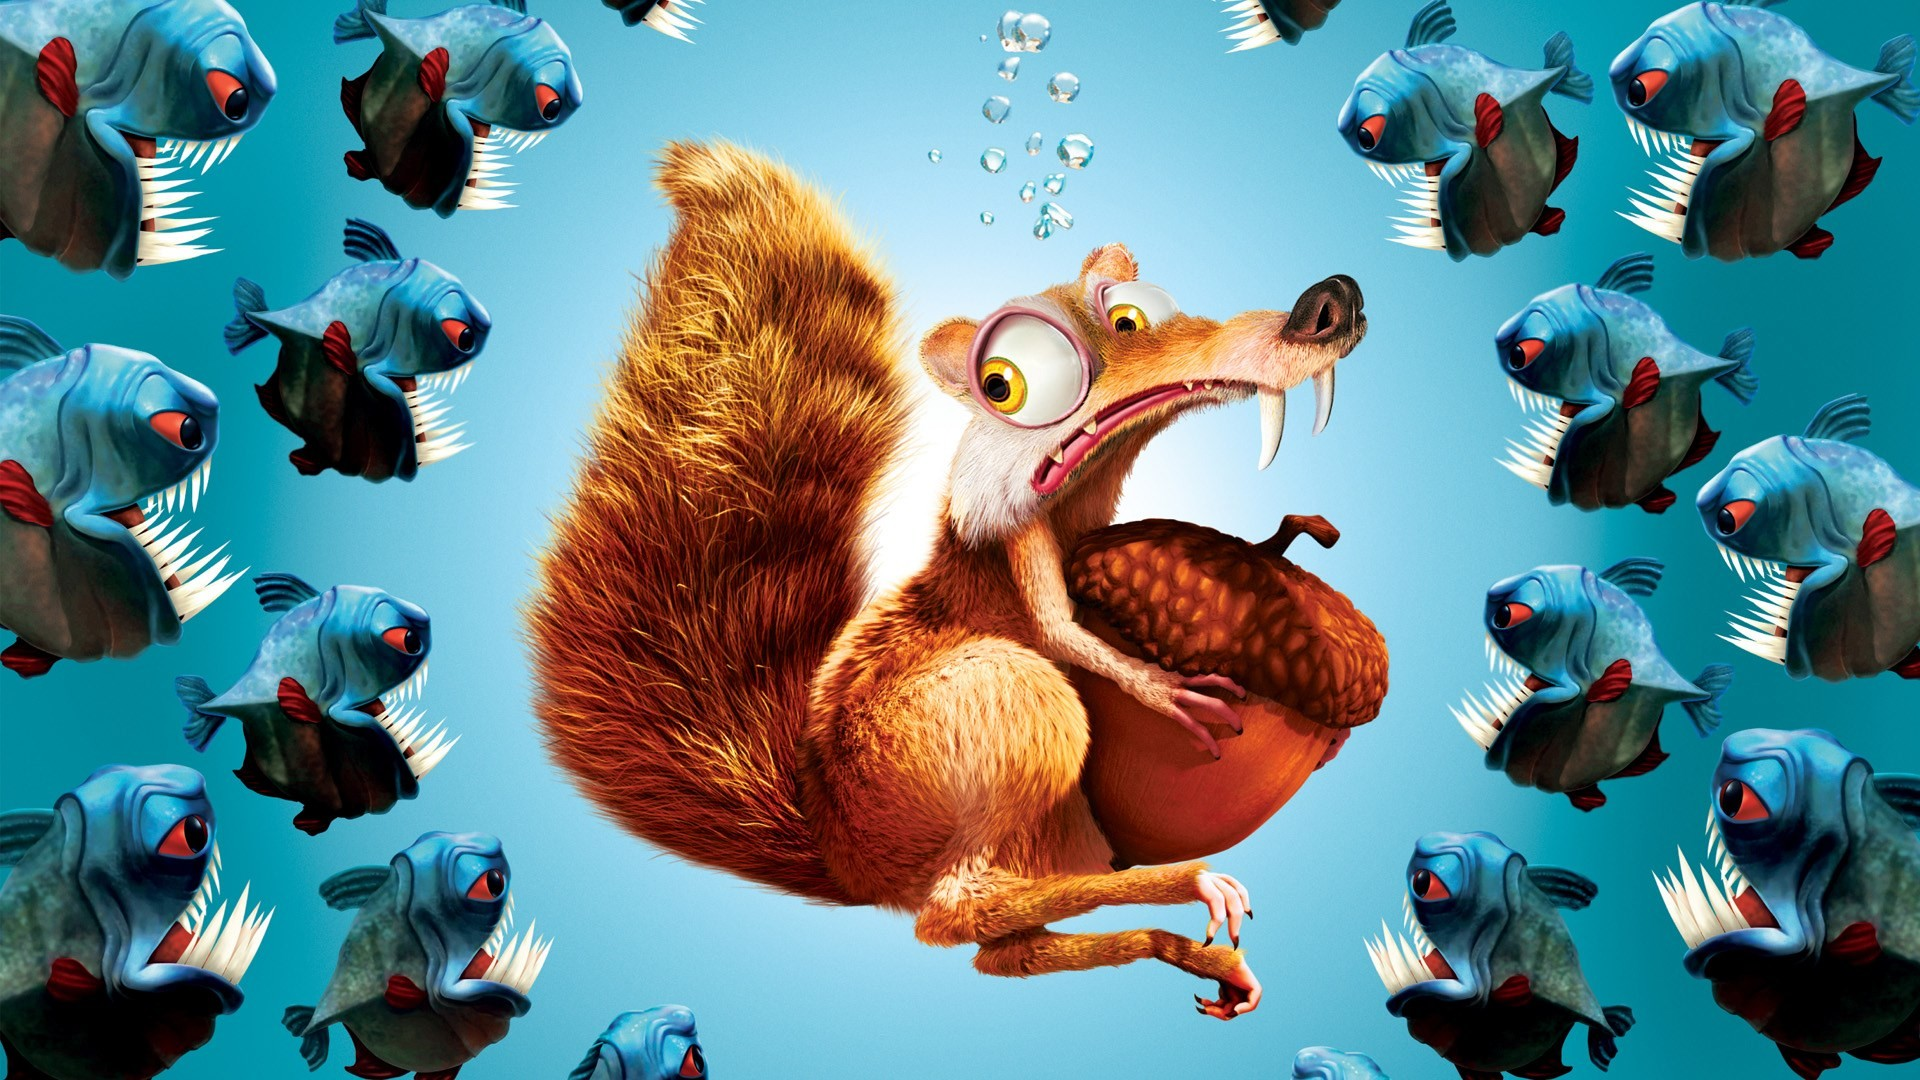 1920x1080 ice age the meltdown wallpaper free hd widescreen, 495 kB - Curt Brian